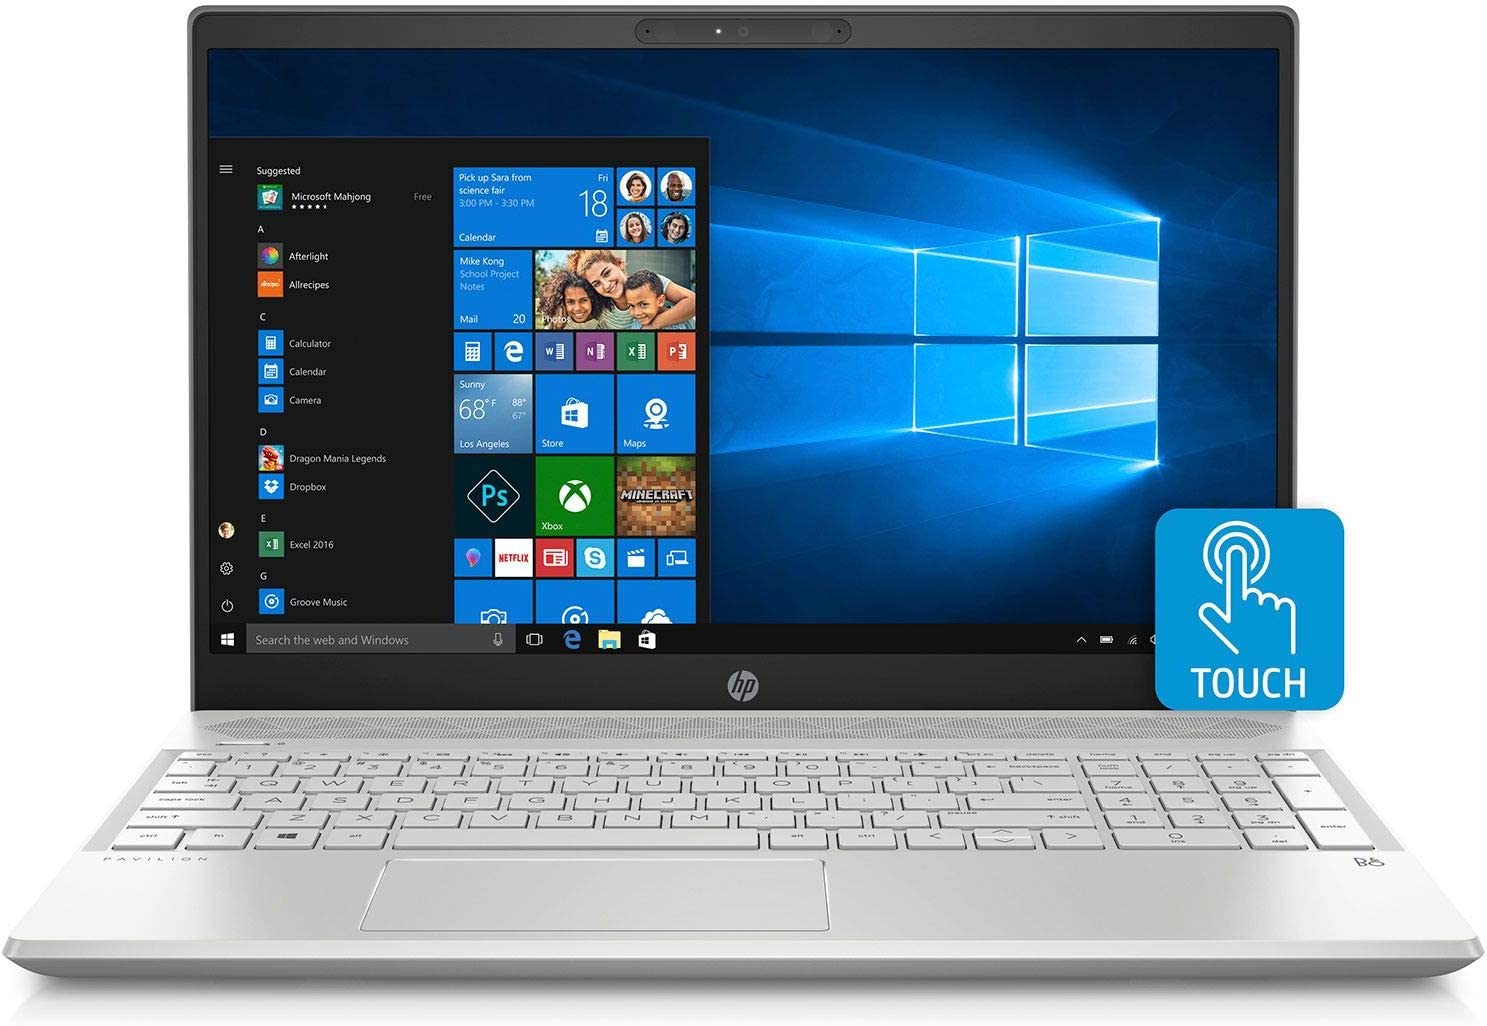 "Flagship 2019 HP Pavilion Business 15.6"" FHD IPS Micro-Edge Touchscreen Laptop-Intel Quad-Core i7-8550U 16G DDR4 256G SSD+2TB HDD Backlit Keyboard 802.11ac Bluetooth HDMI B&O Webcam USB Type-C Win 10"